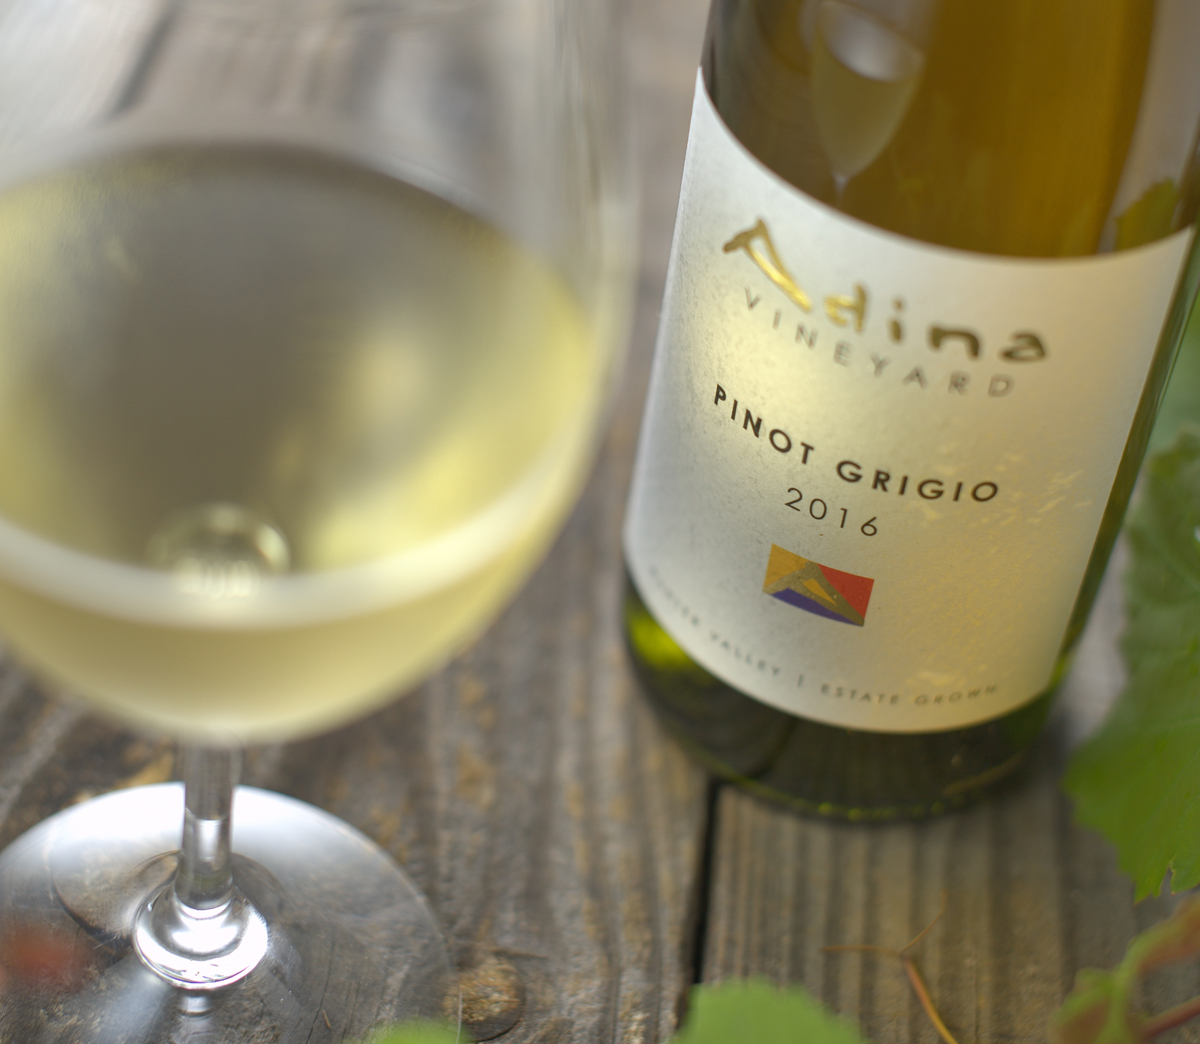 Delicious chilled Pinot Grigio